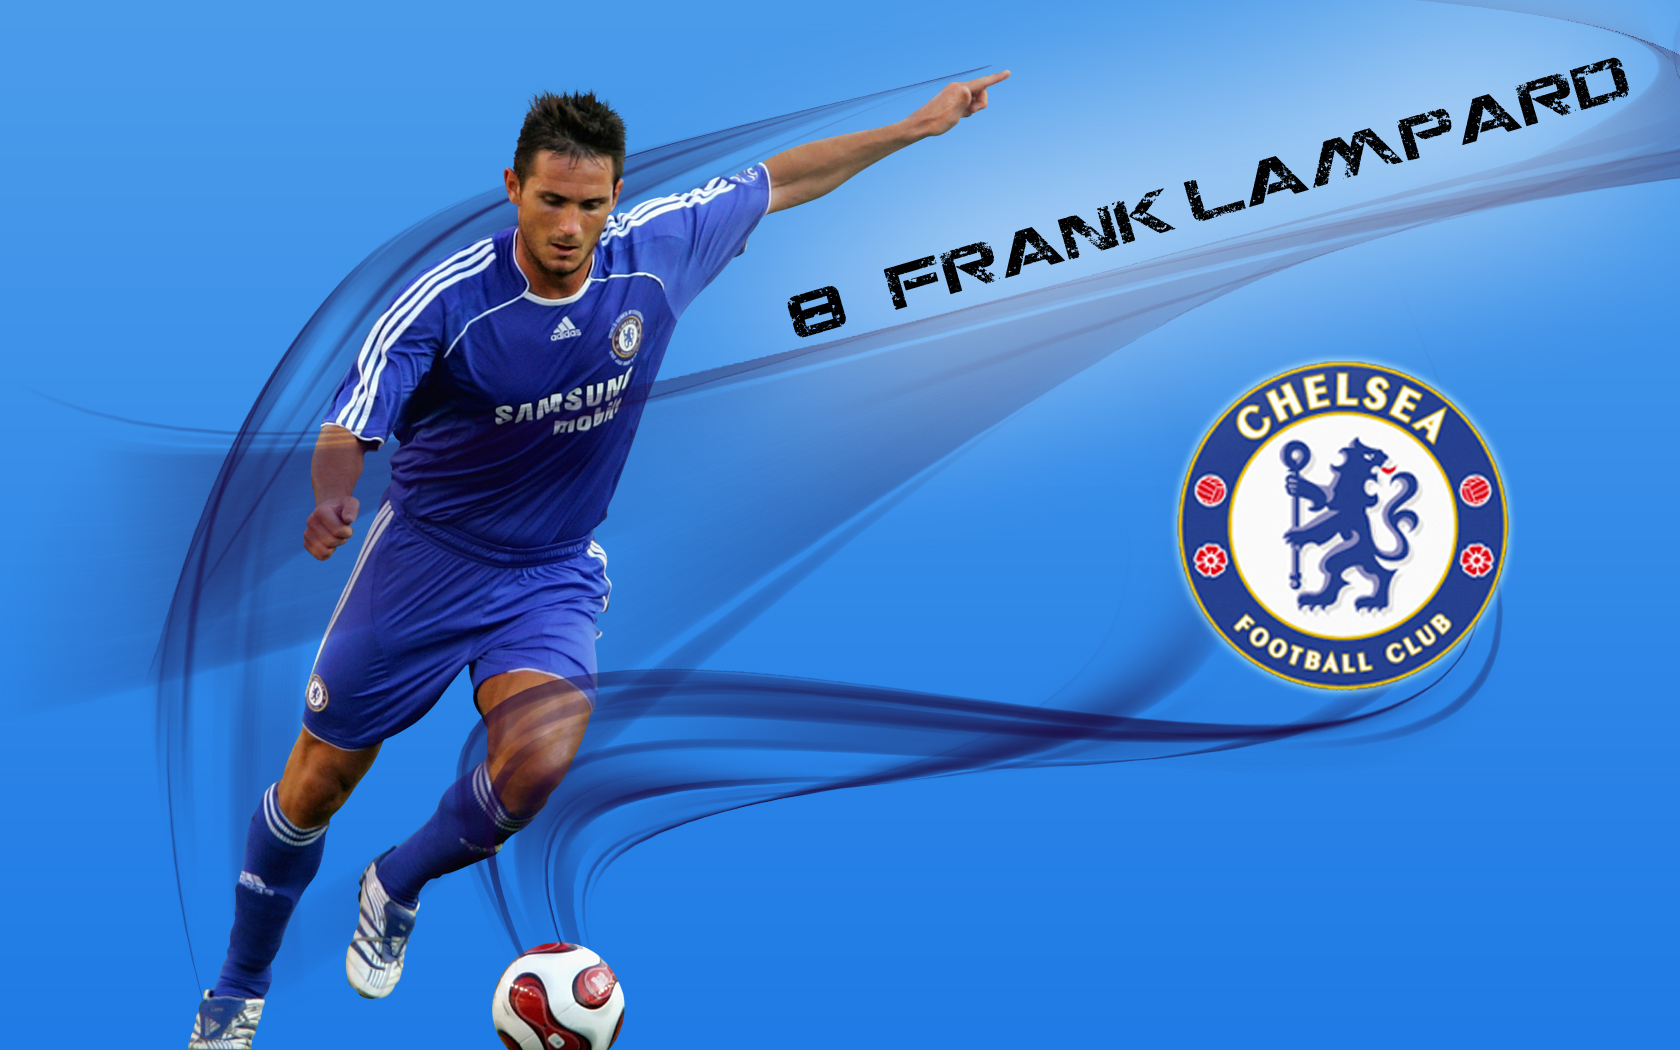 Soccer graphics Frank lampard